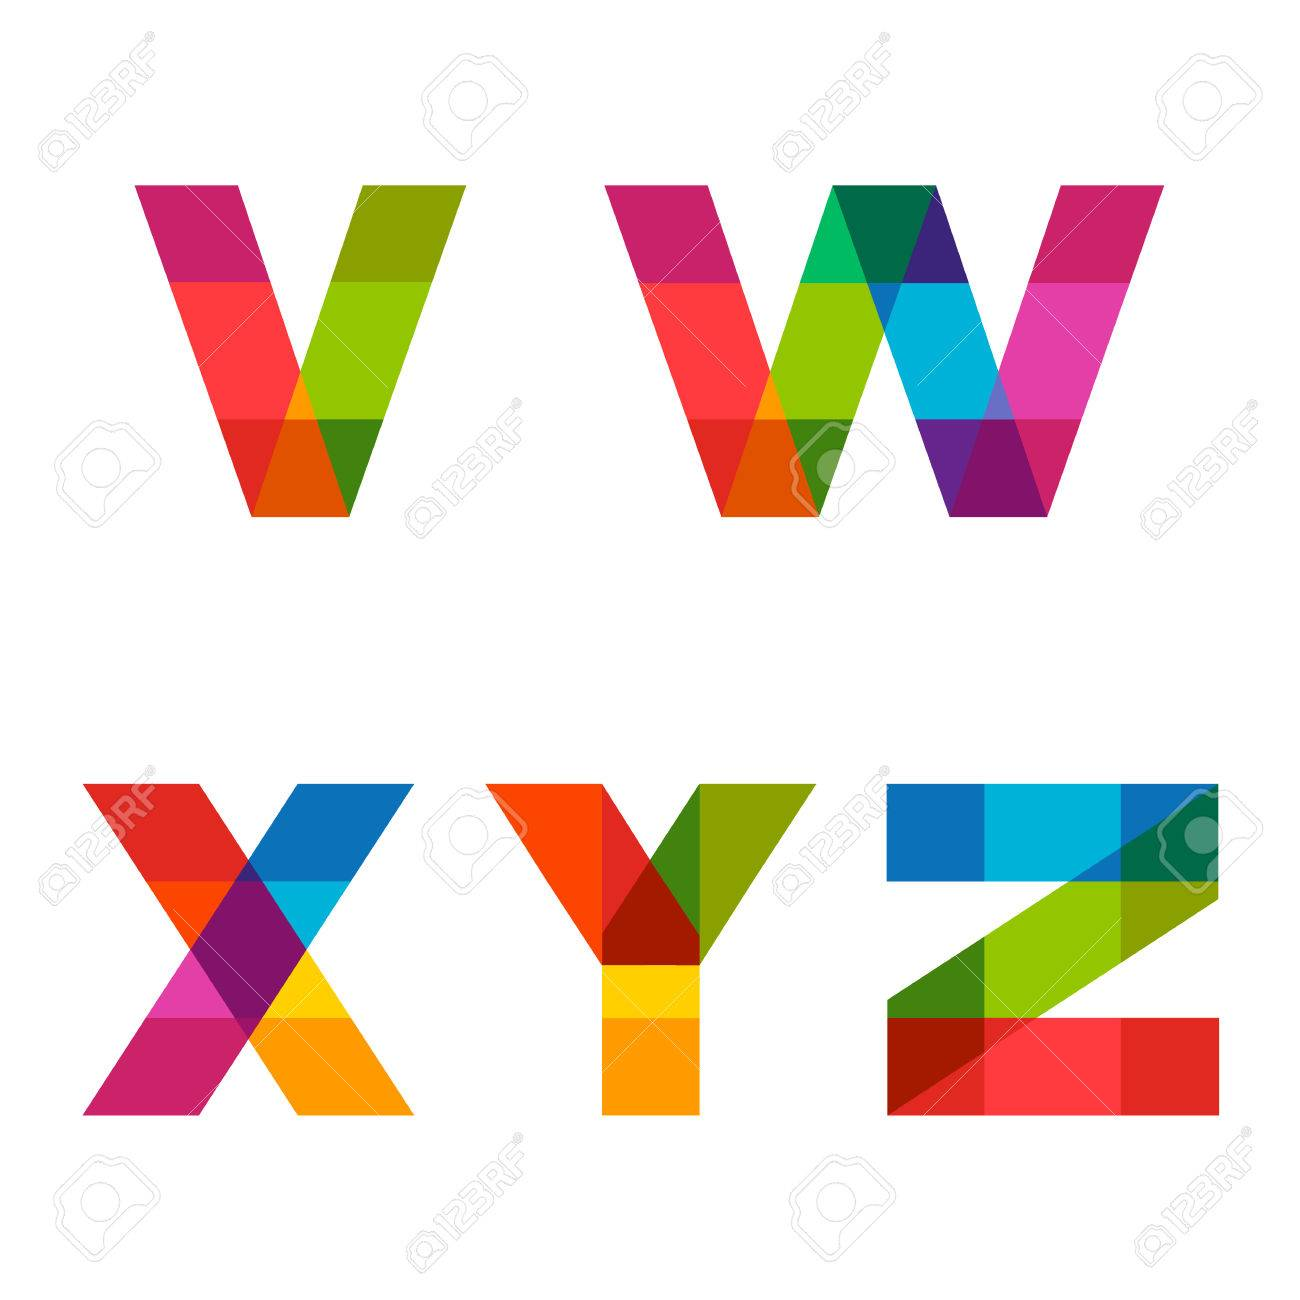 Colorful Alphabet Made Of Overlapping Shapes Beautiful Vivid Capital Latin Letters Ready For Poster